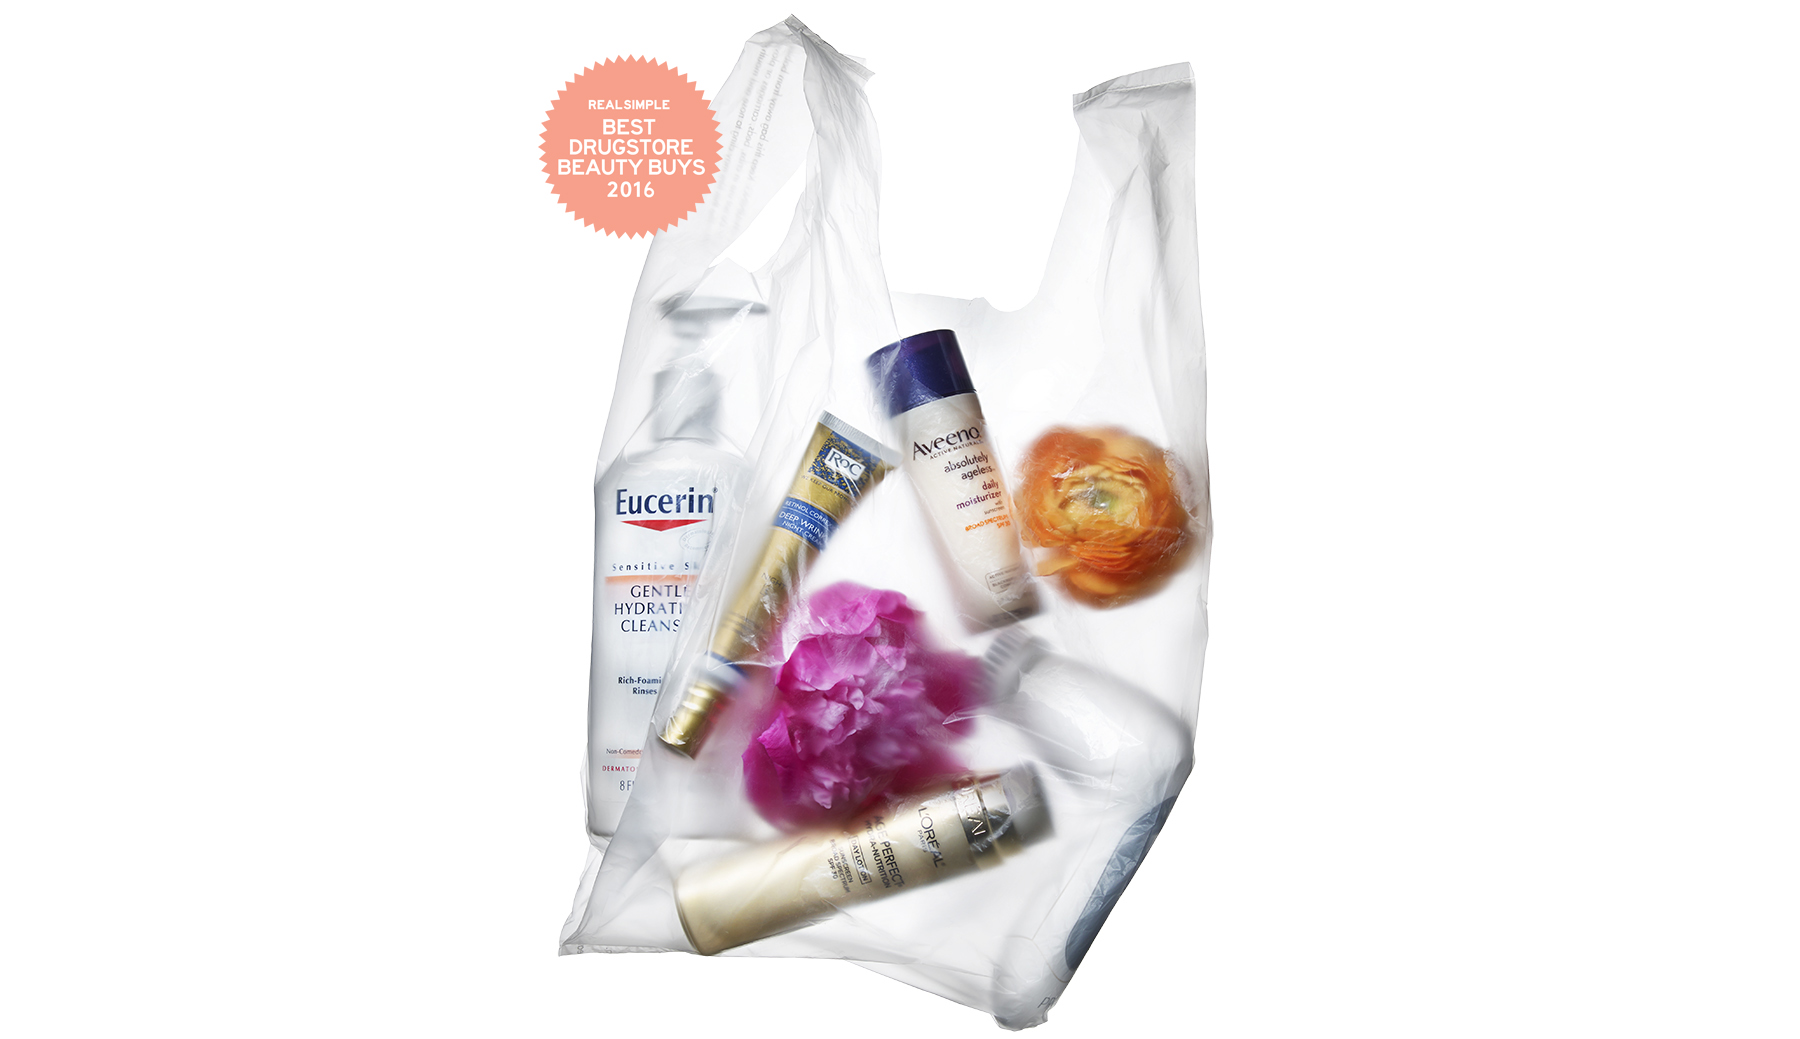 Drugstore products for normal or combination skin